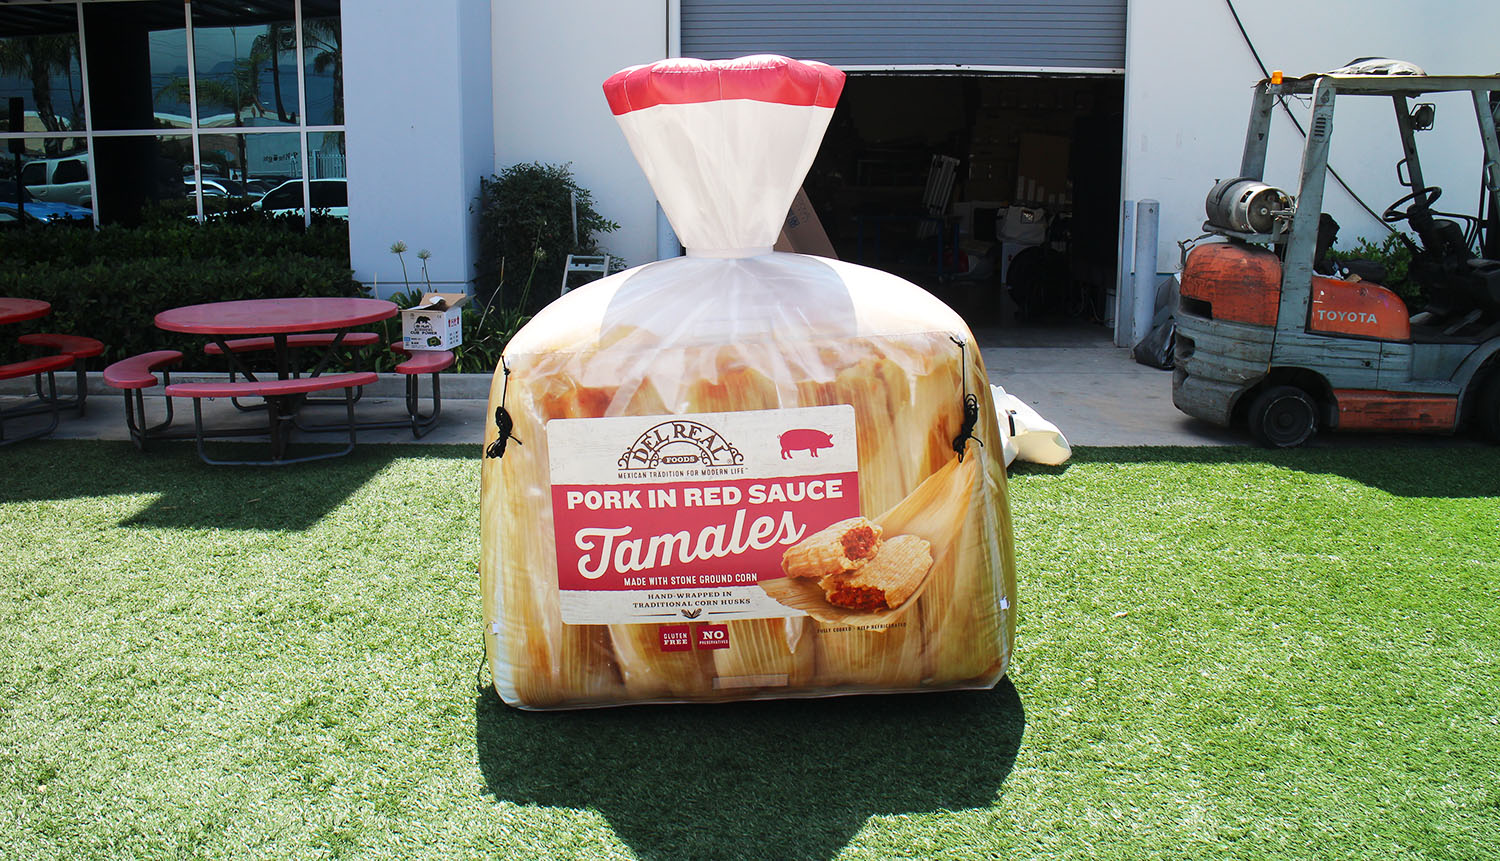 tamales-package-inflatable-replica